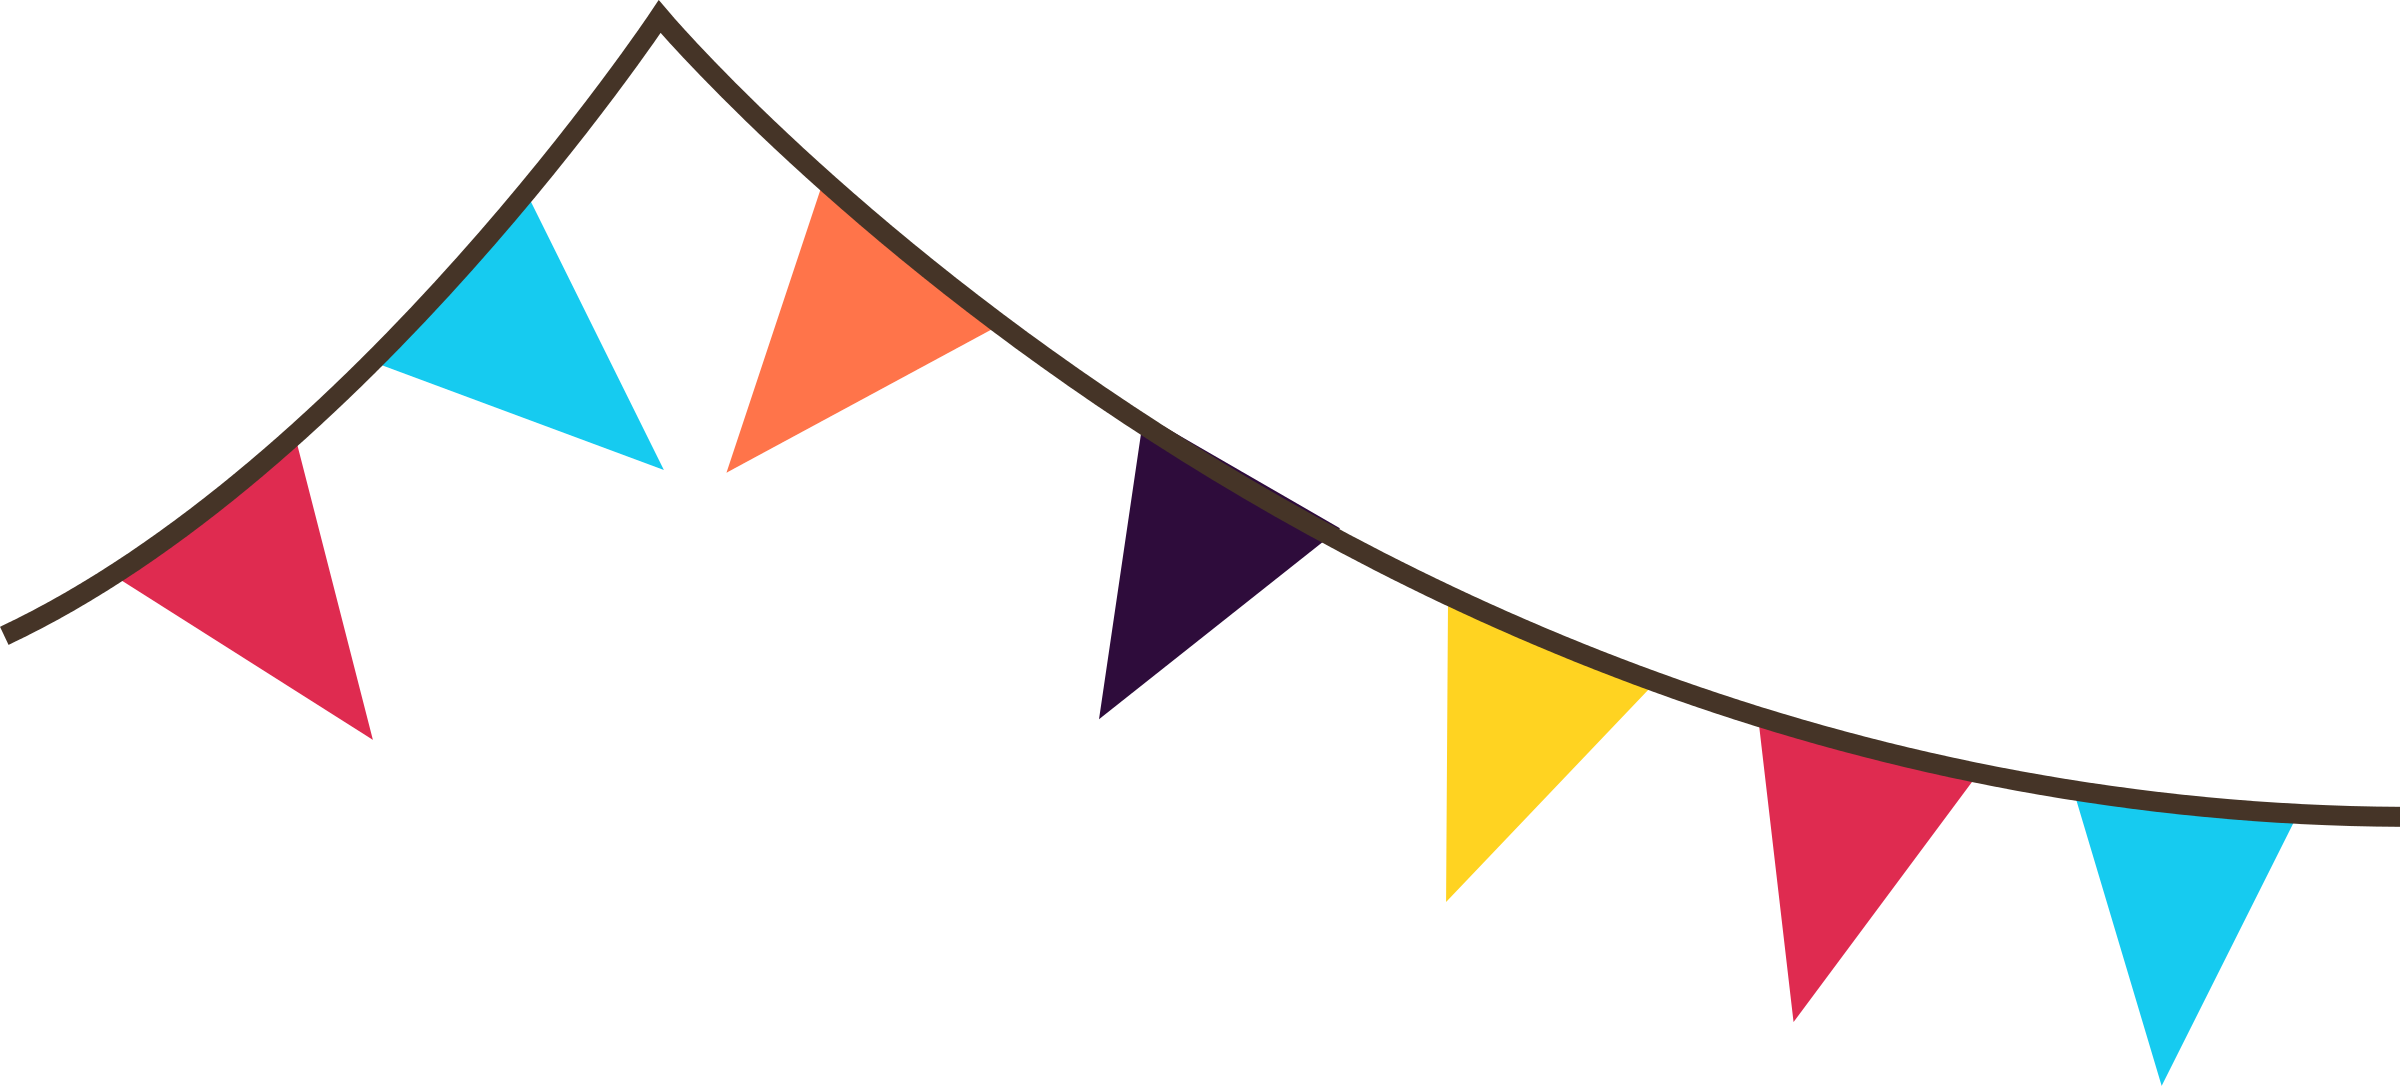 Triangular clipart pennant.  collection of triangle